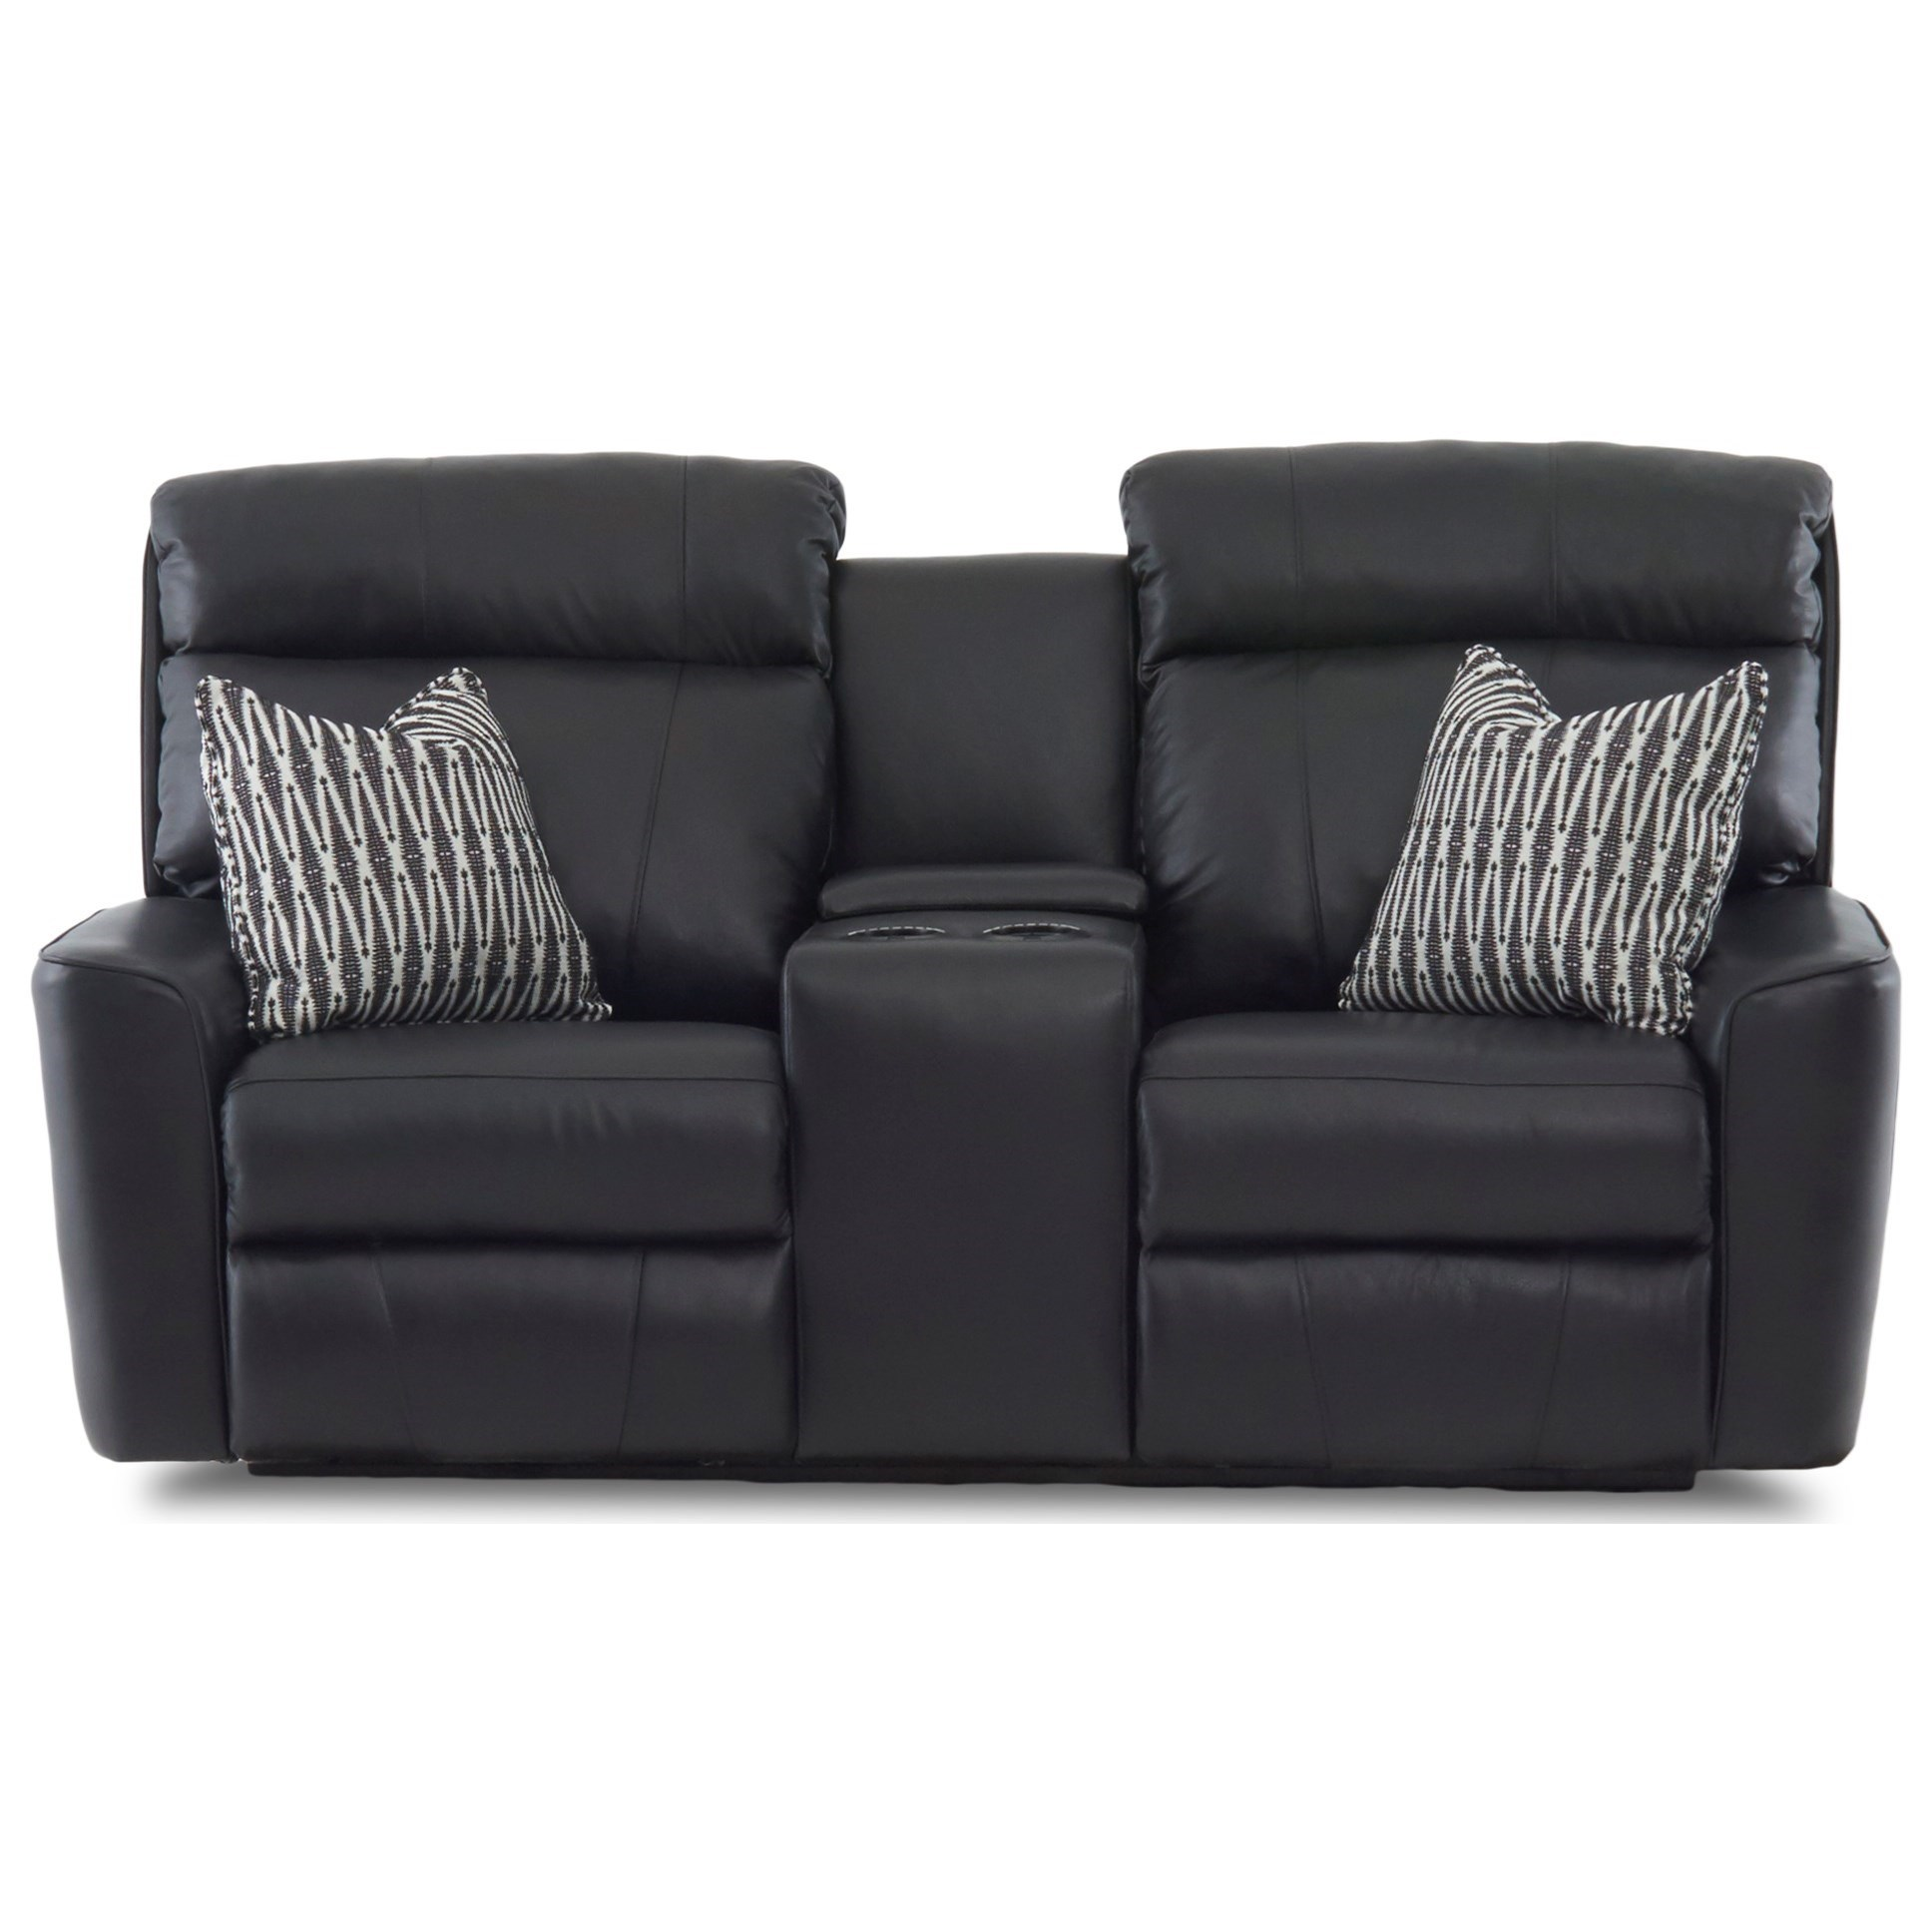 Casual Power Reclining Console Loveseat with Pillows and Power Headrests